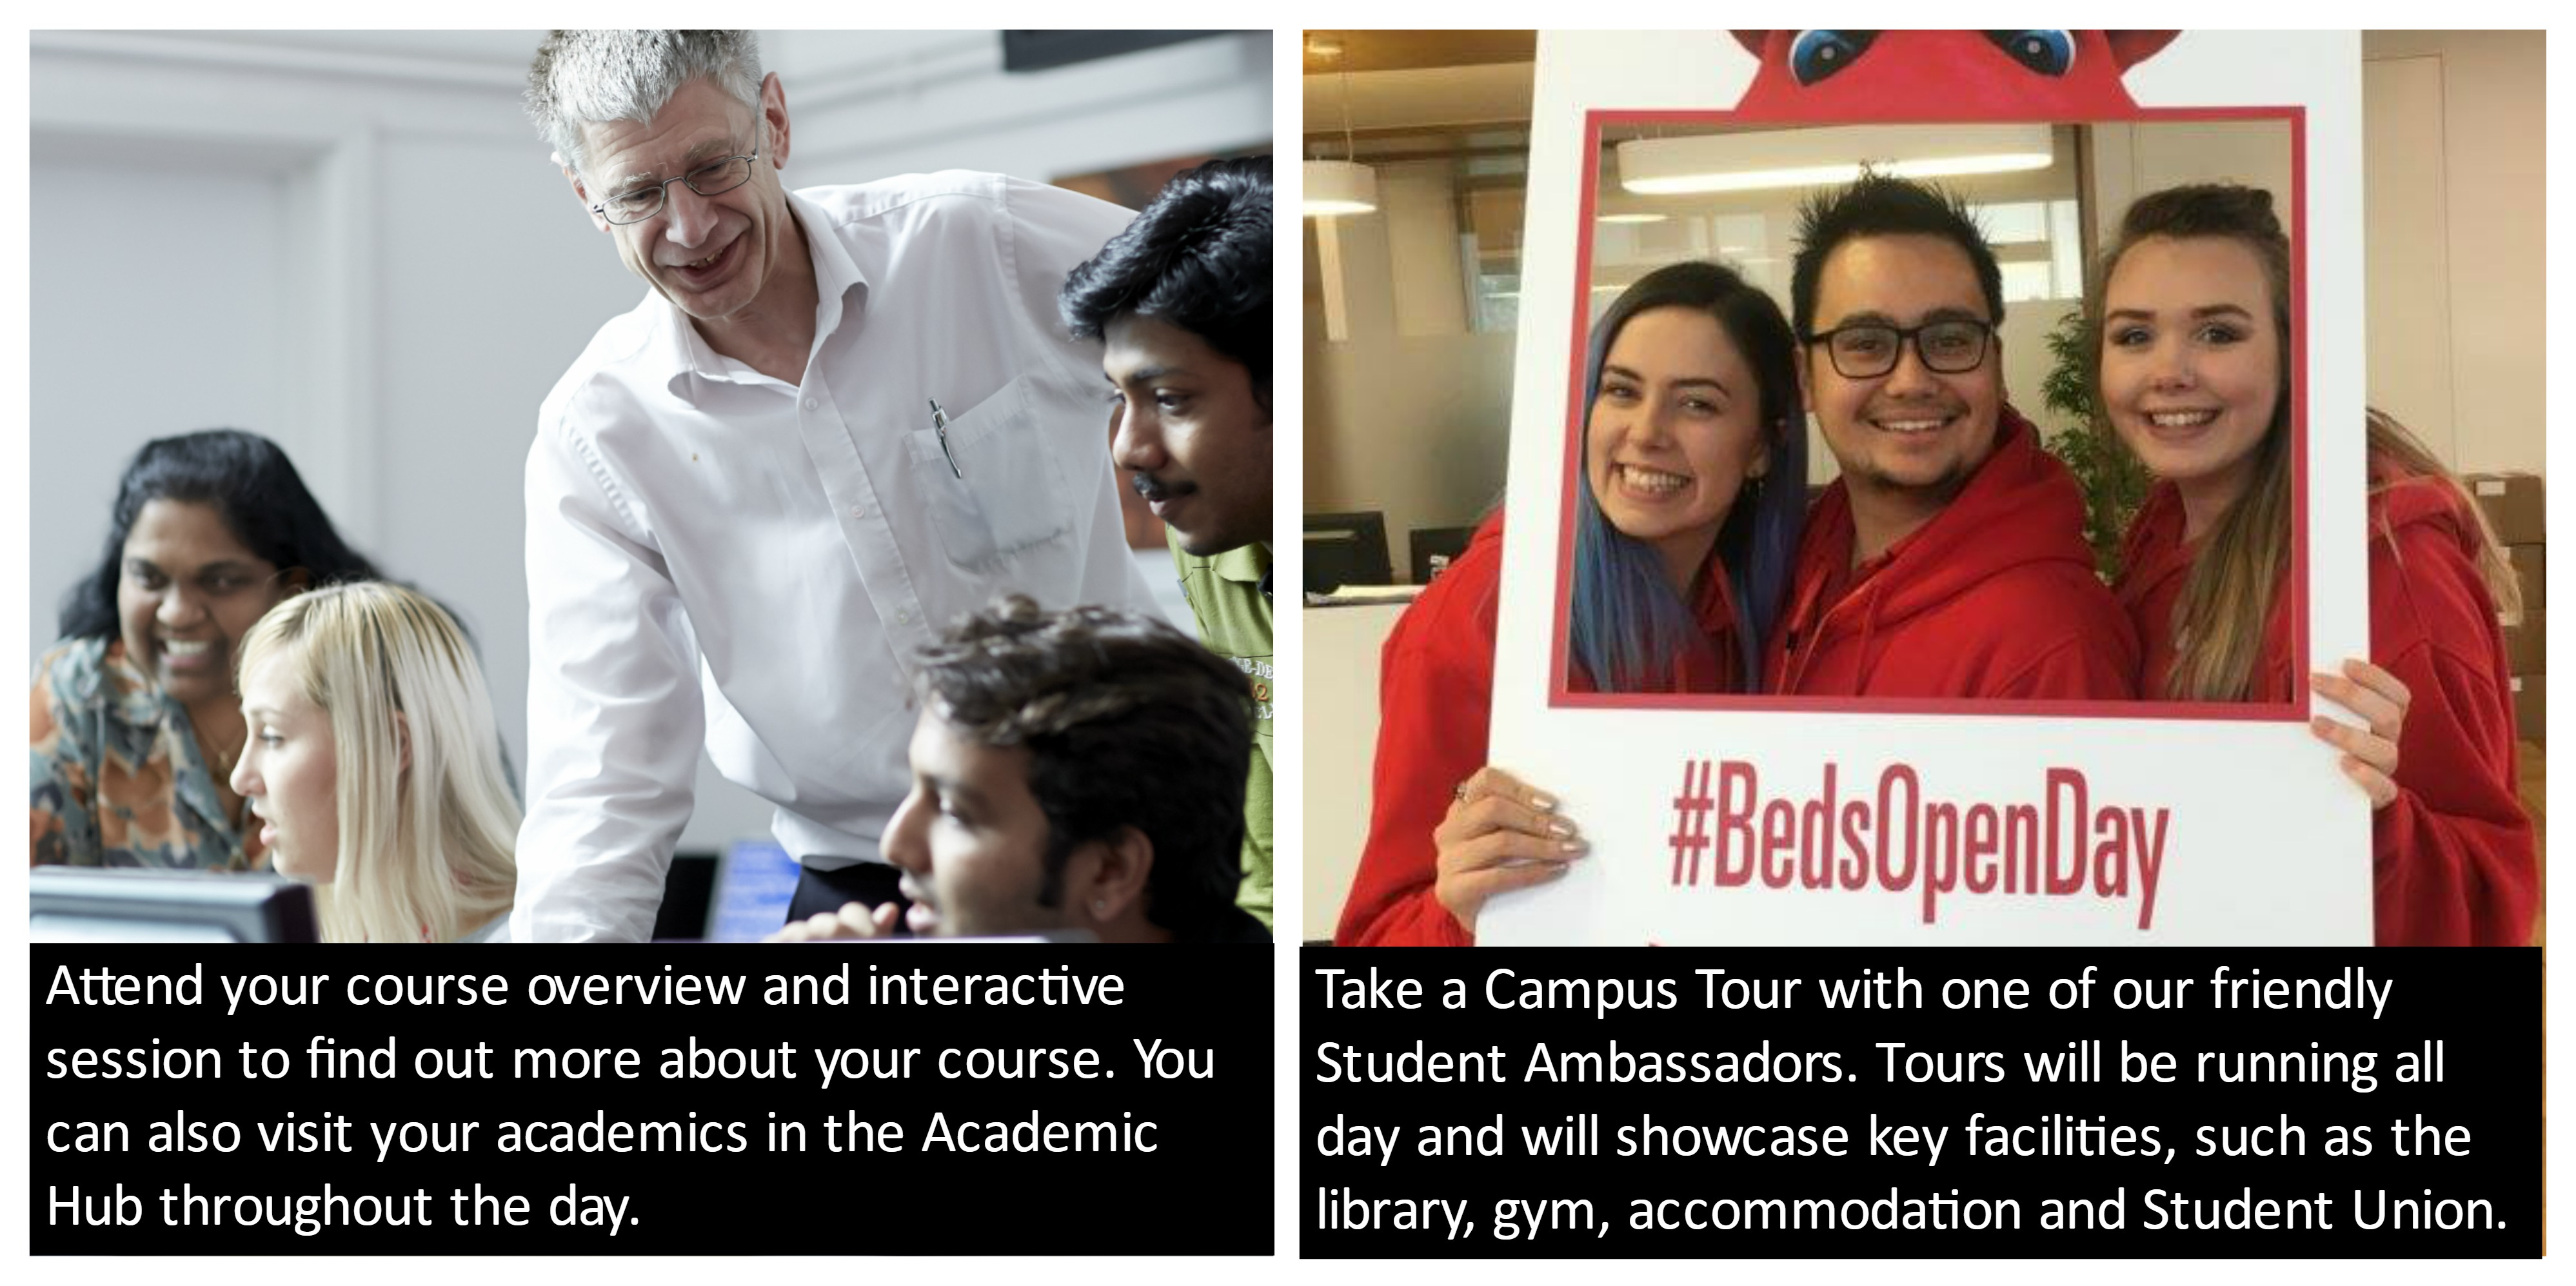 Attend your course overview and interactive session; Recieve a campus tour from a friendly Student Ambassador